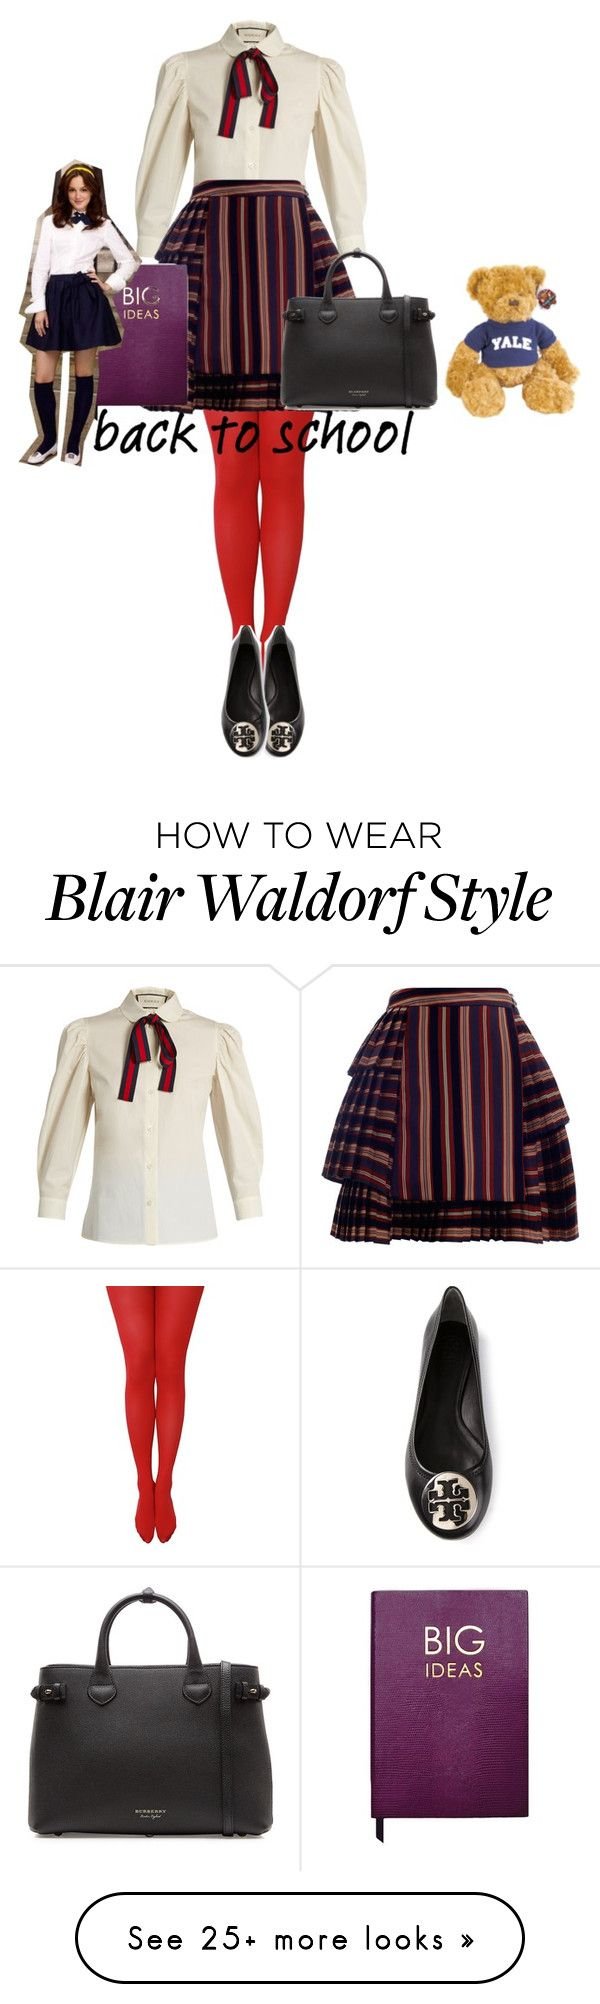 """""""blair waldorf"""" by littlemisskarlee on Polyvore featuring Gucci, Zimmermann, Tory Burch, Burberry and Sloane Stationery"""